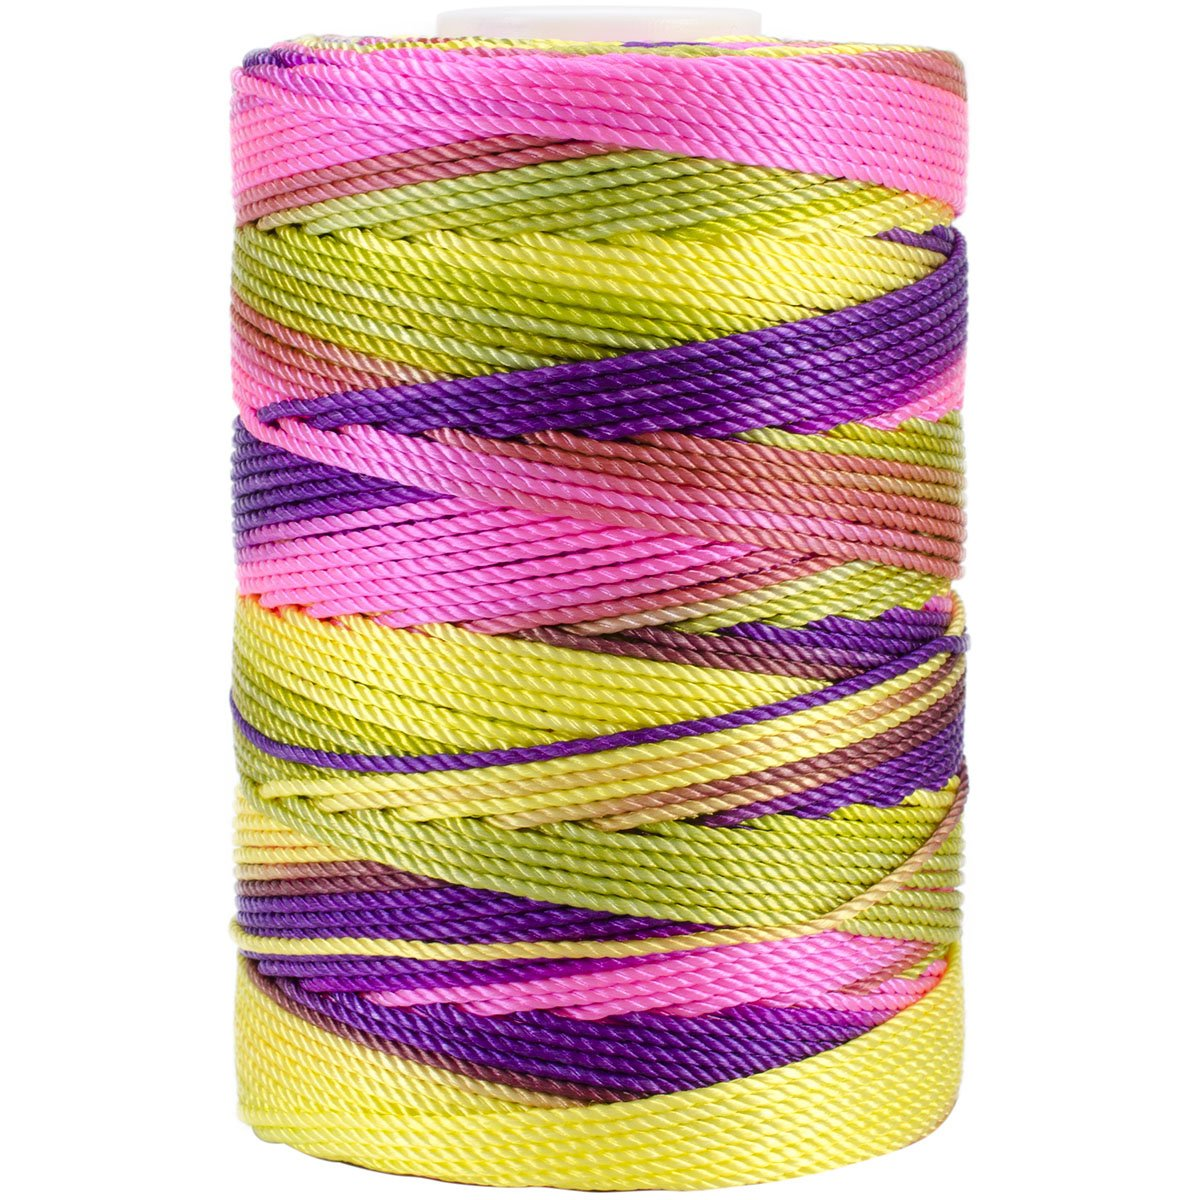 Iris 18-487 Nylon Crochet Thread, 197-Yard, Bright Pastel Mix